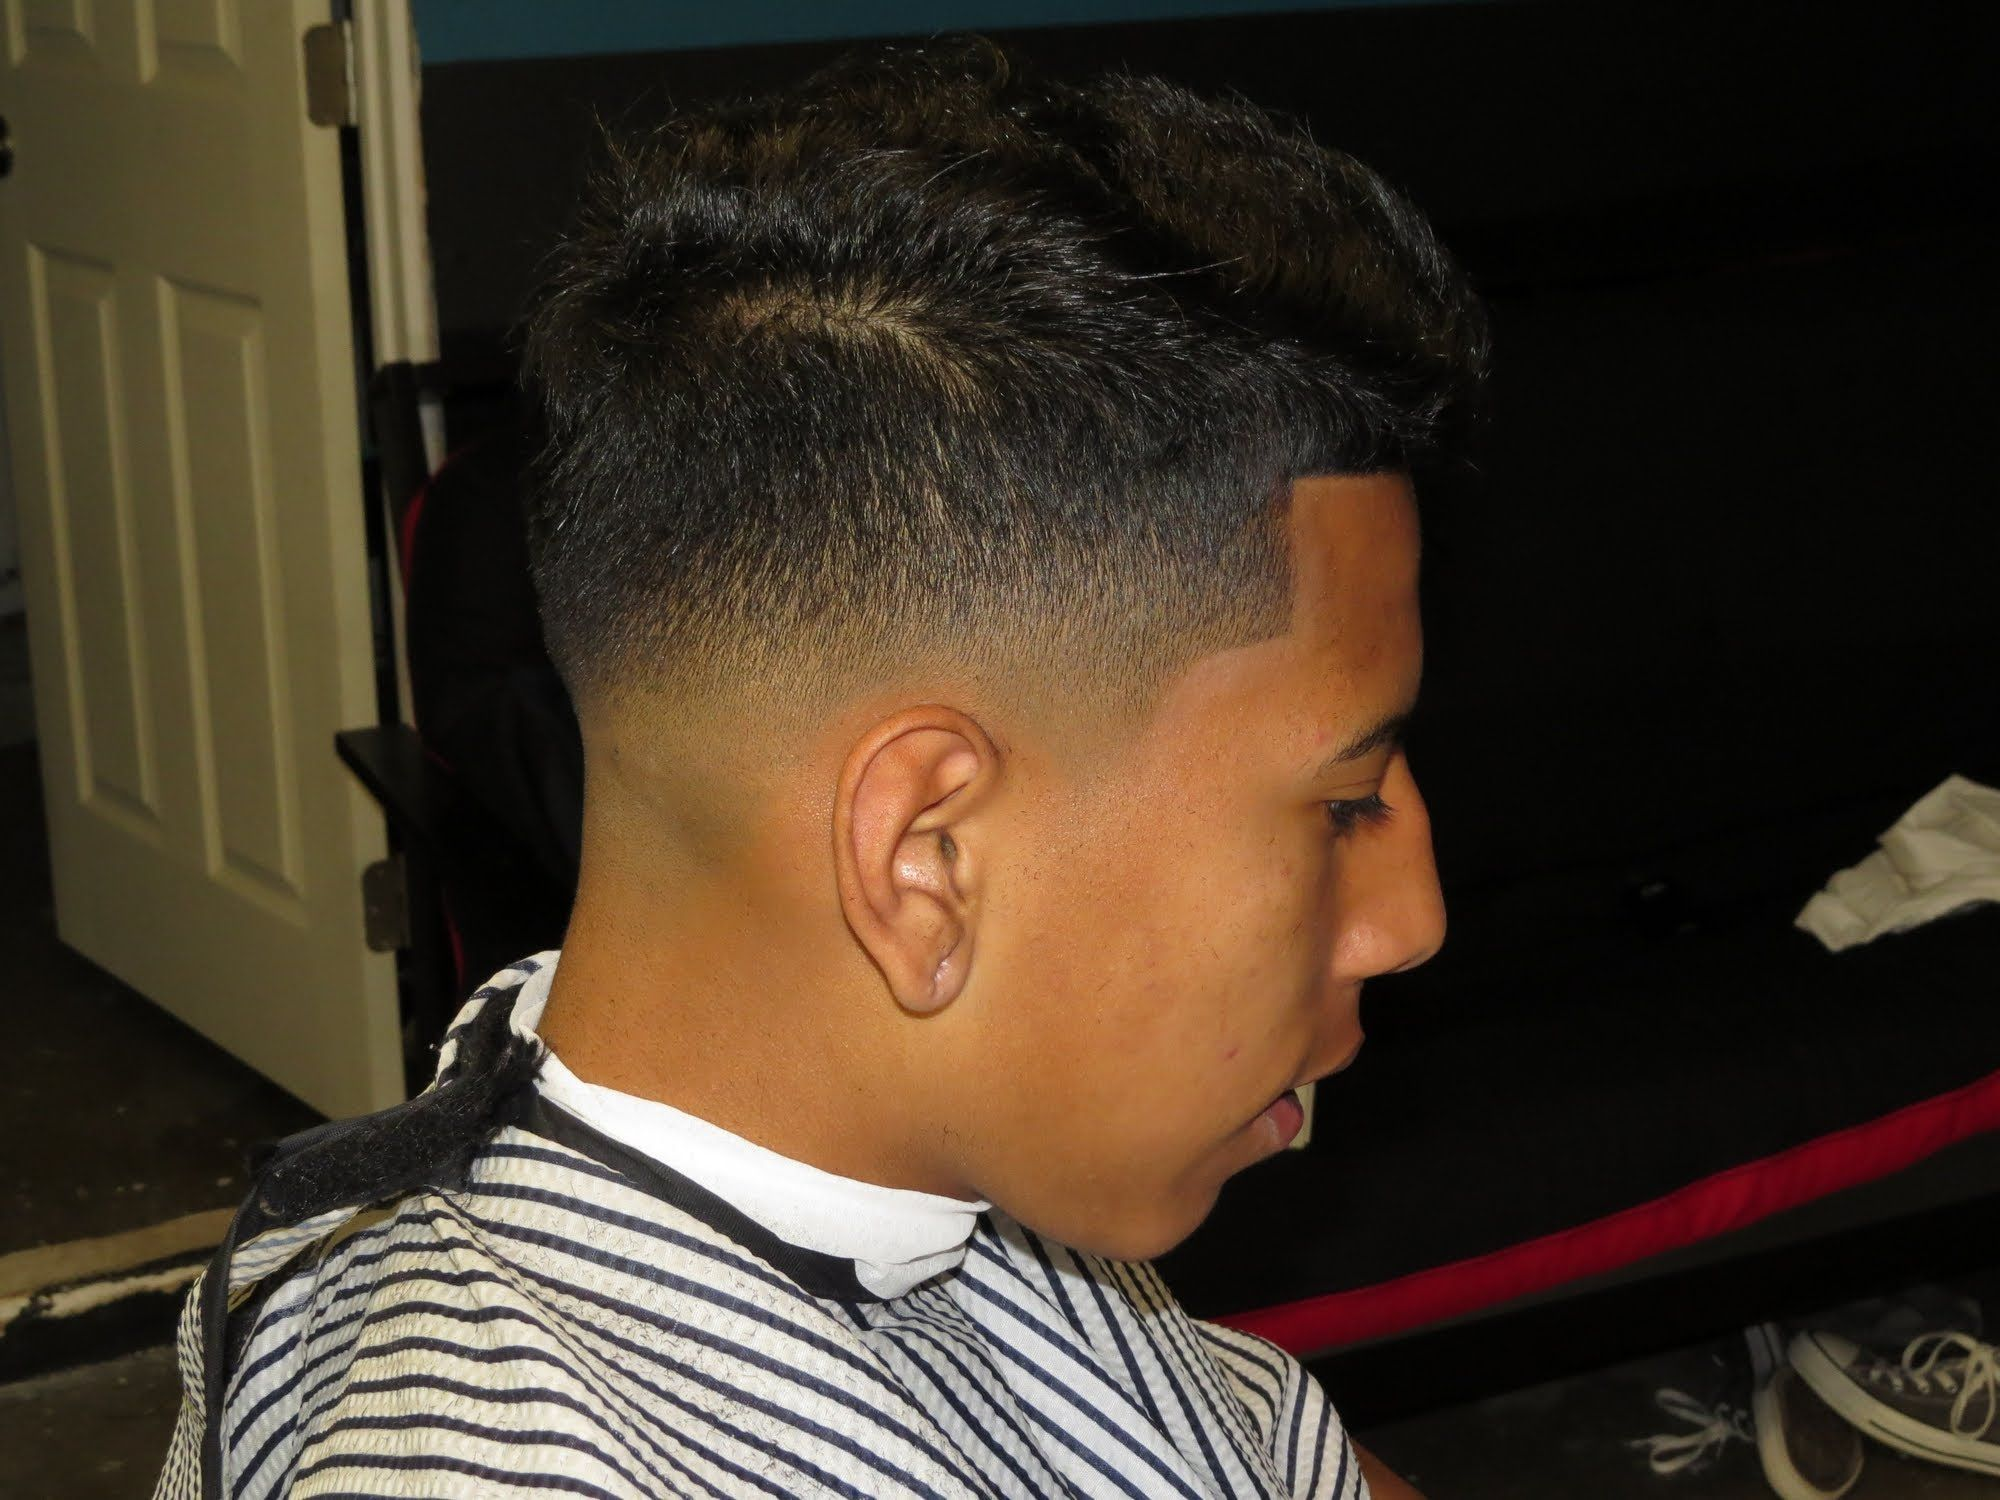 Cool Temp Fade Haircut Styles For Men More Temp Fade Haircut - High taper fade haircut